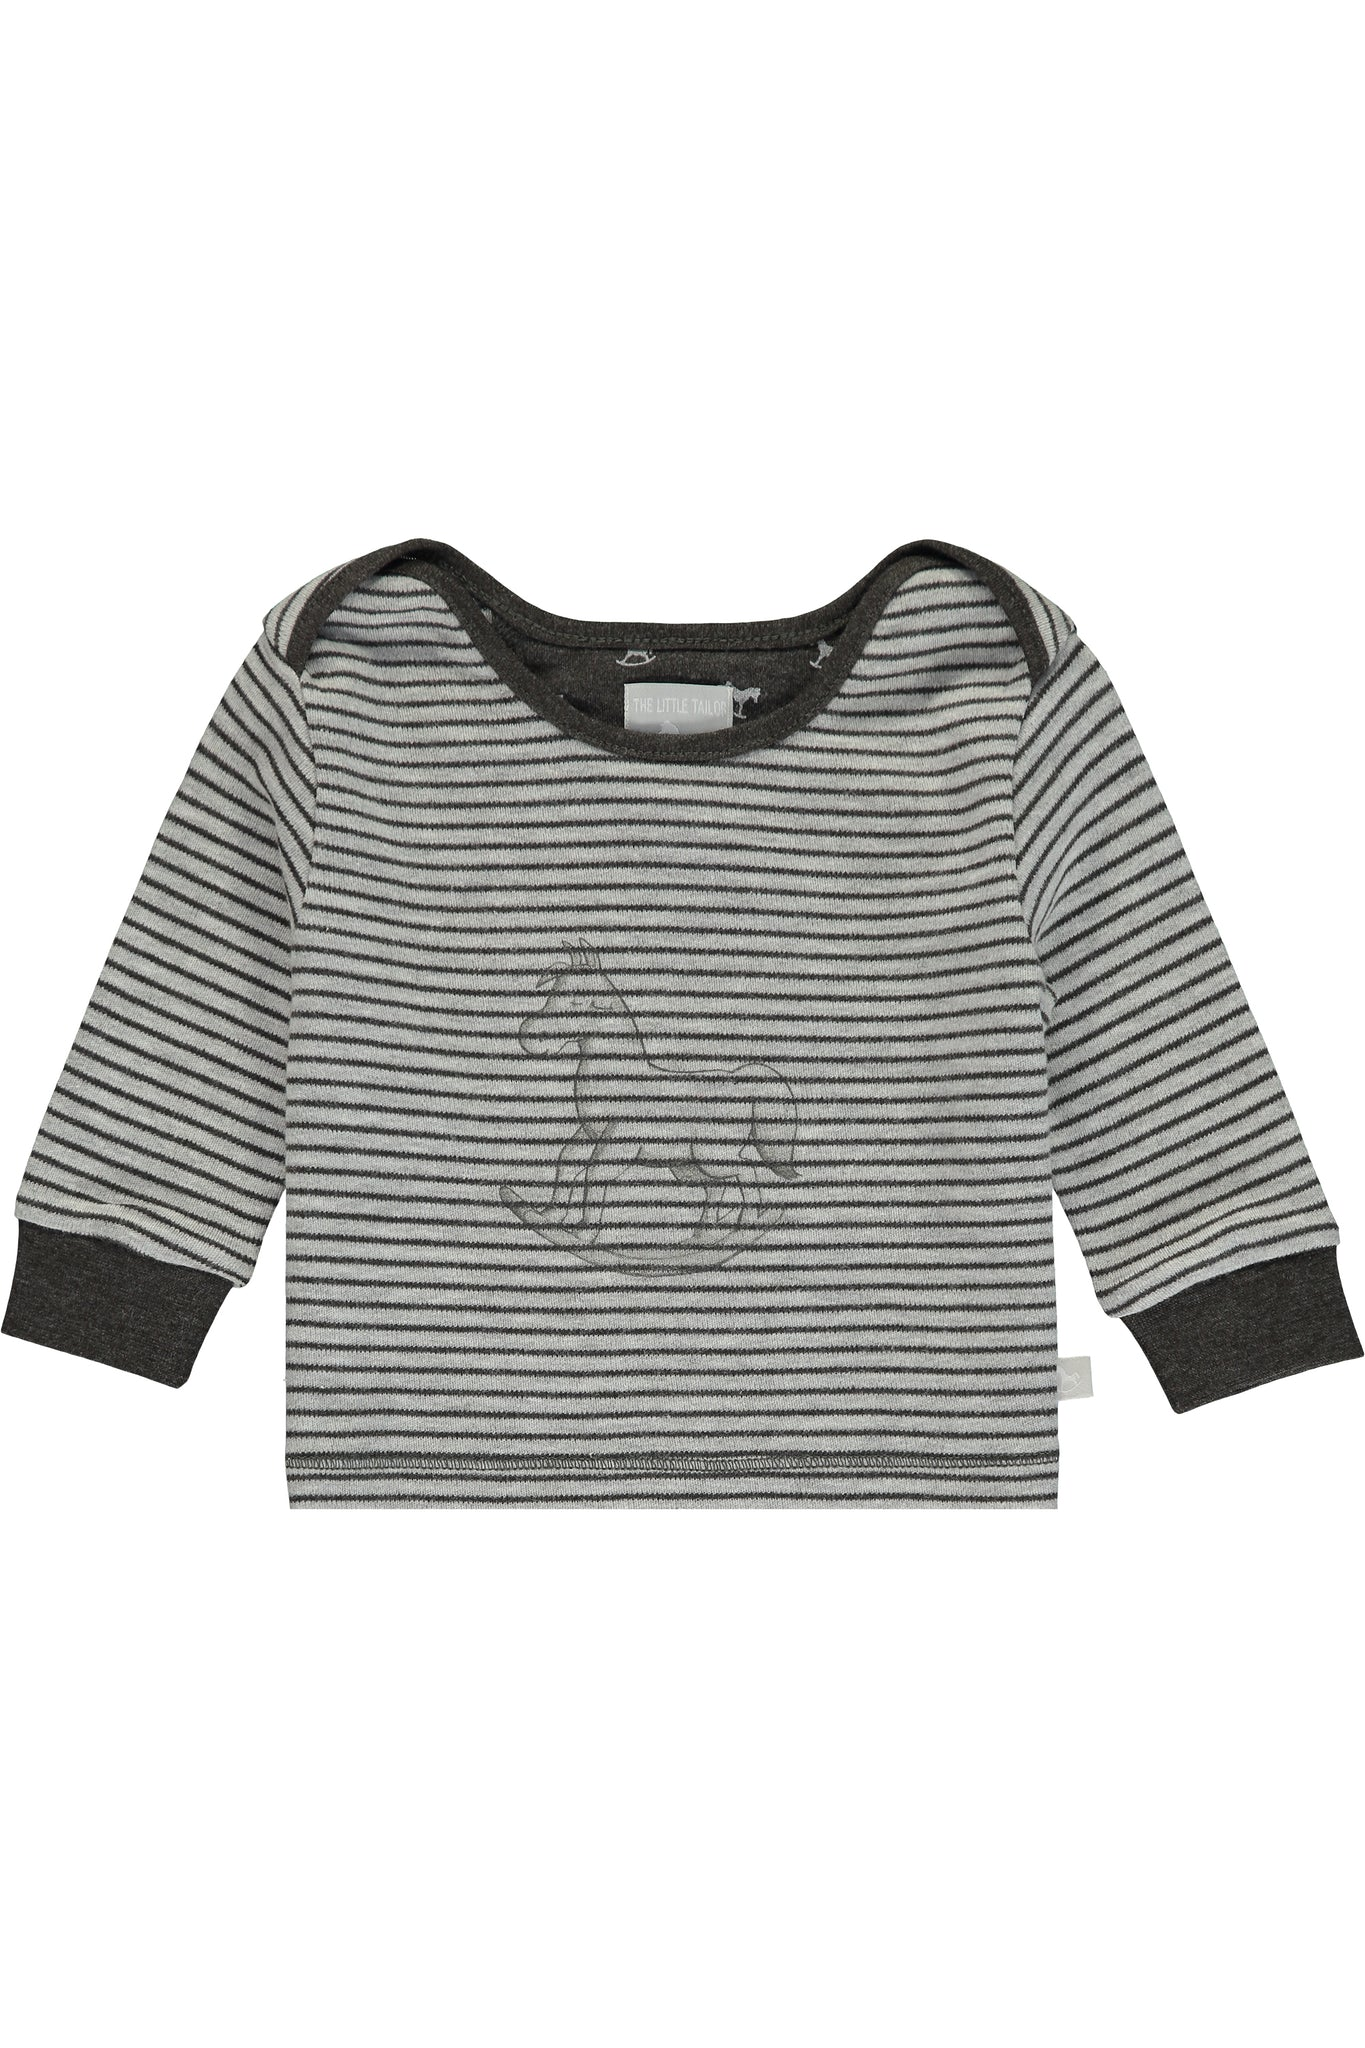 Super Soft Jersey Striped Rocking Horse Top - charcoal and grey marl